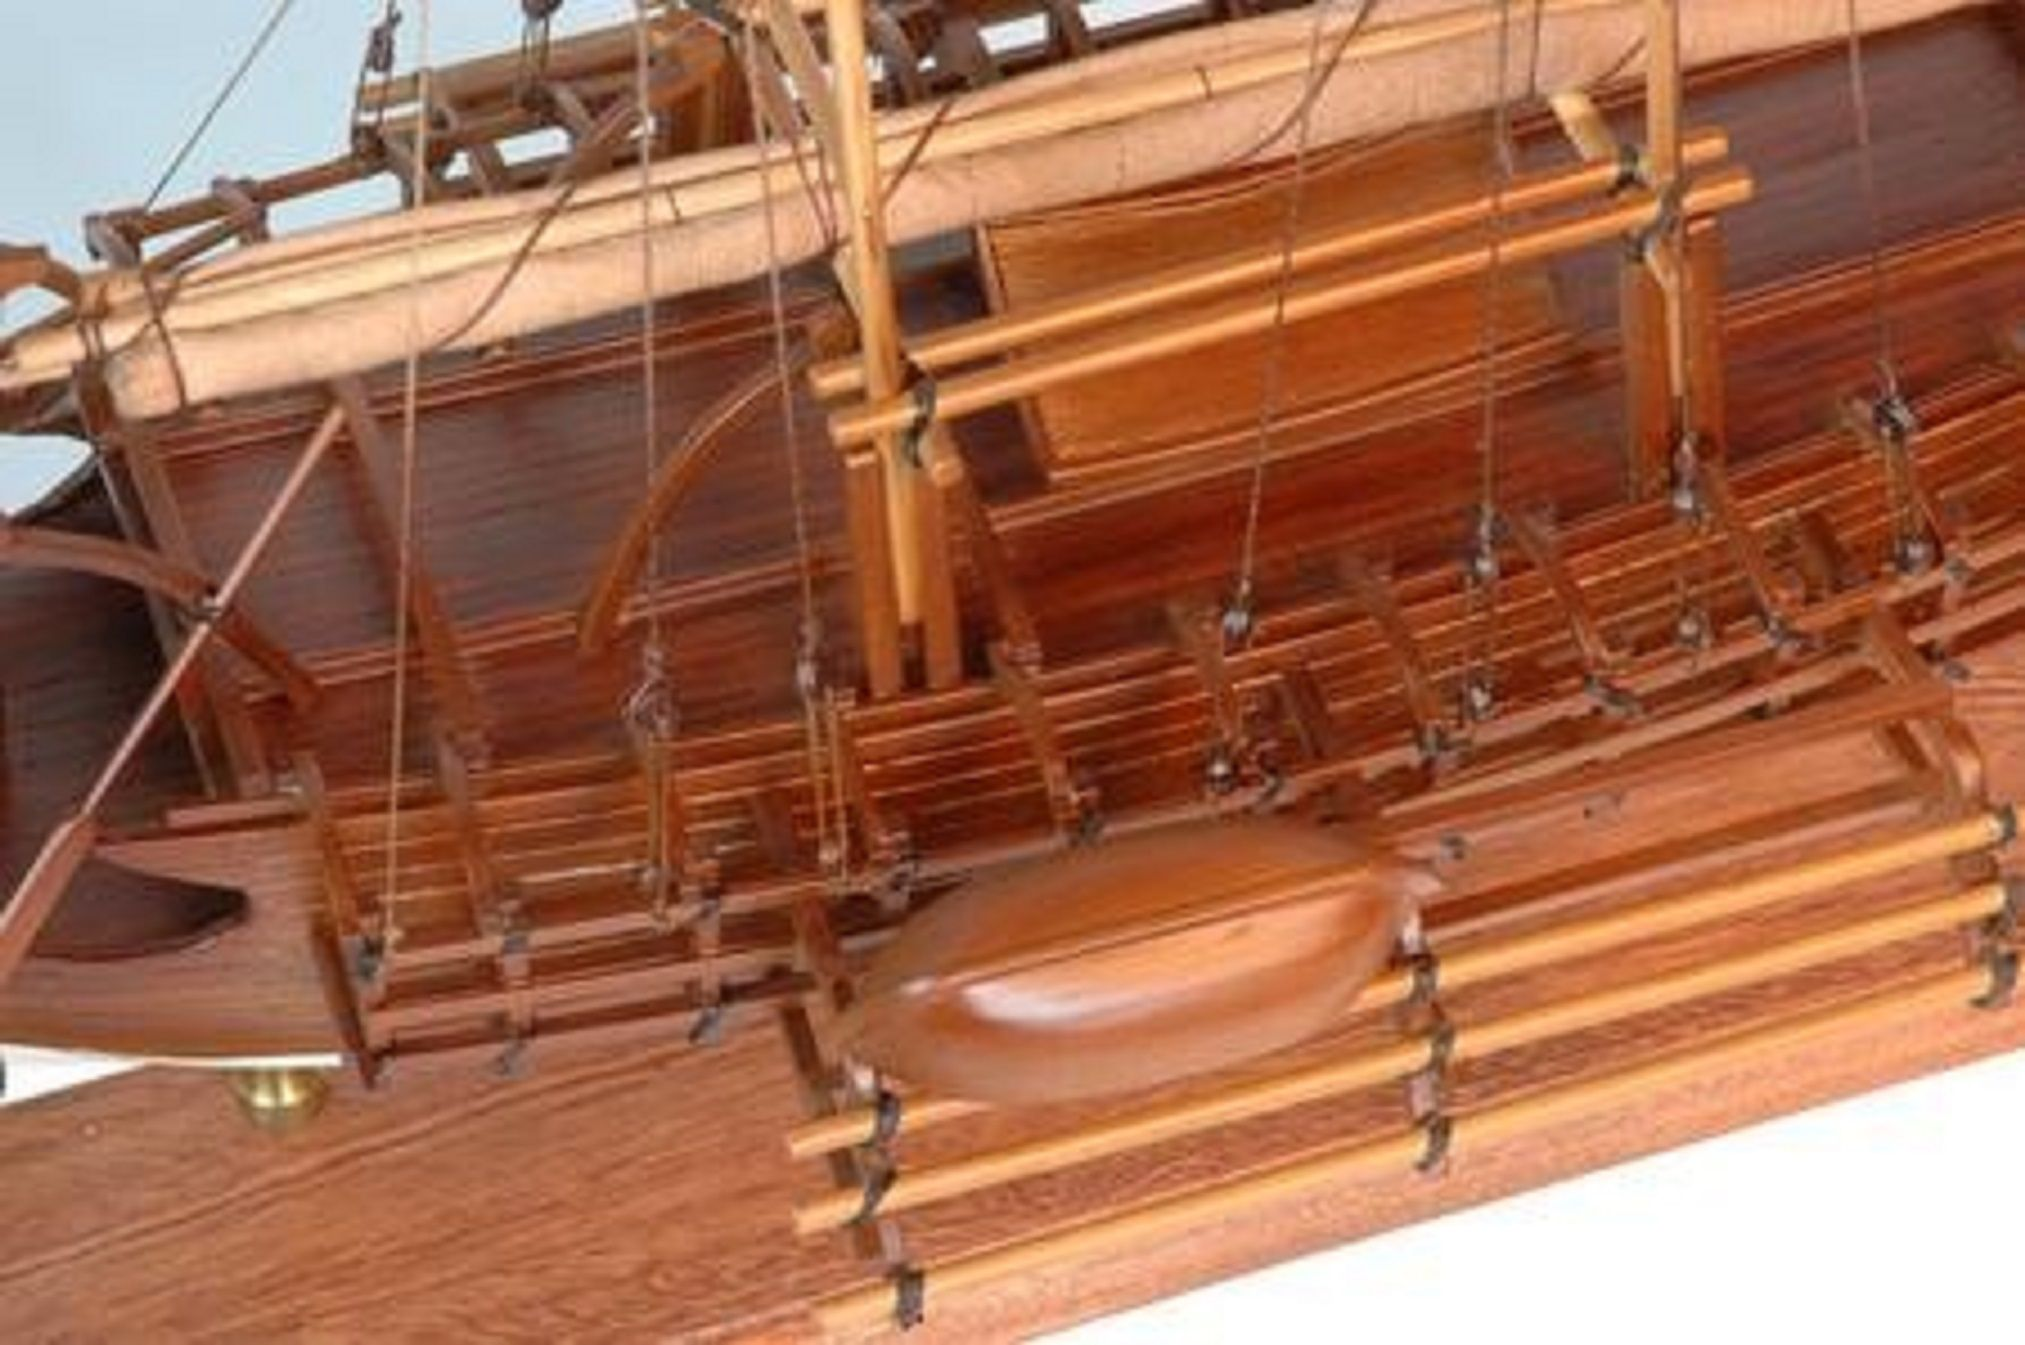 229-6983-Borobudur-model-ship-Premier-Range